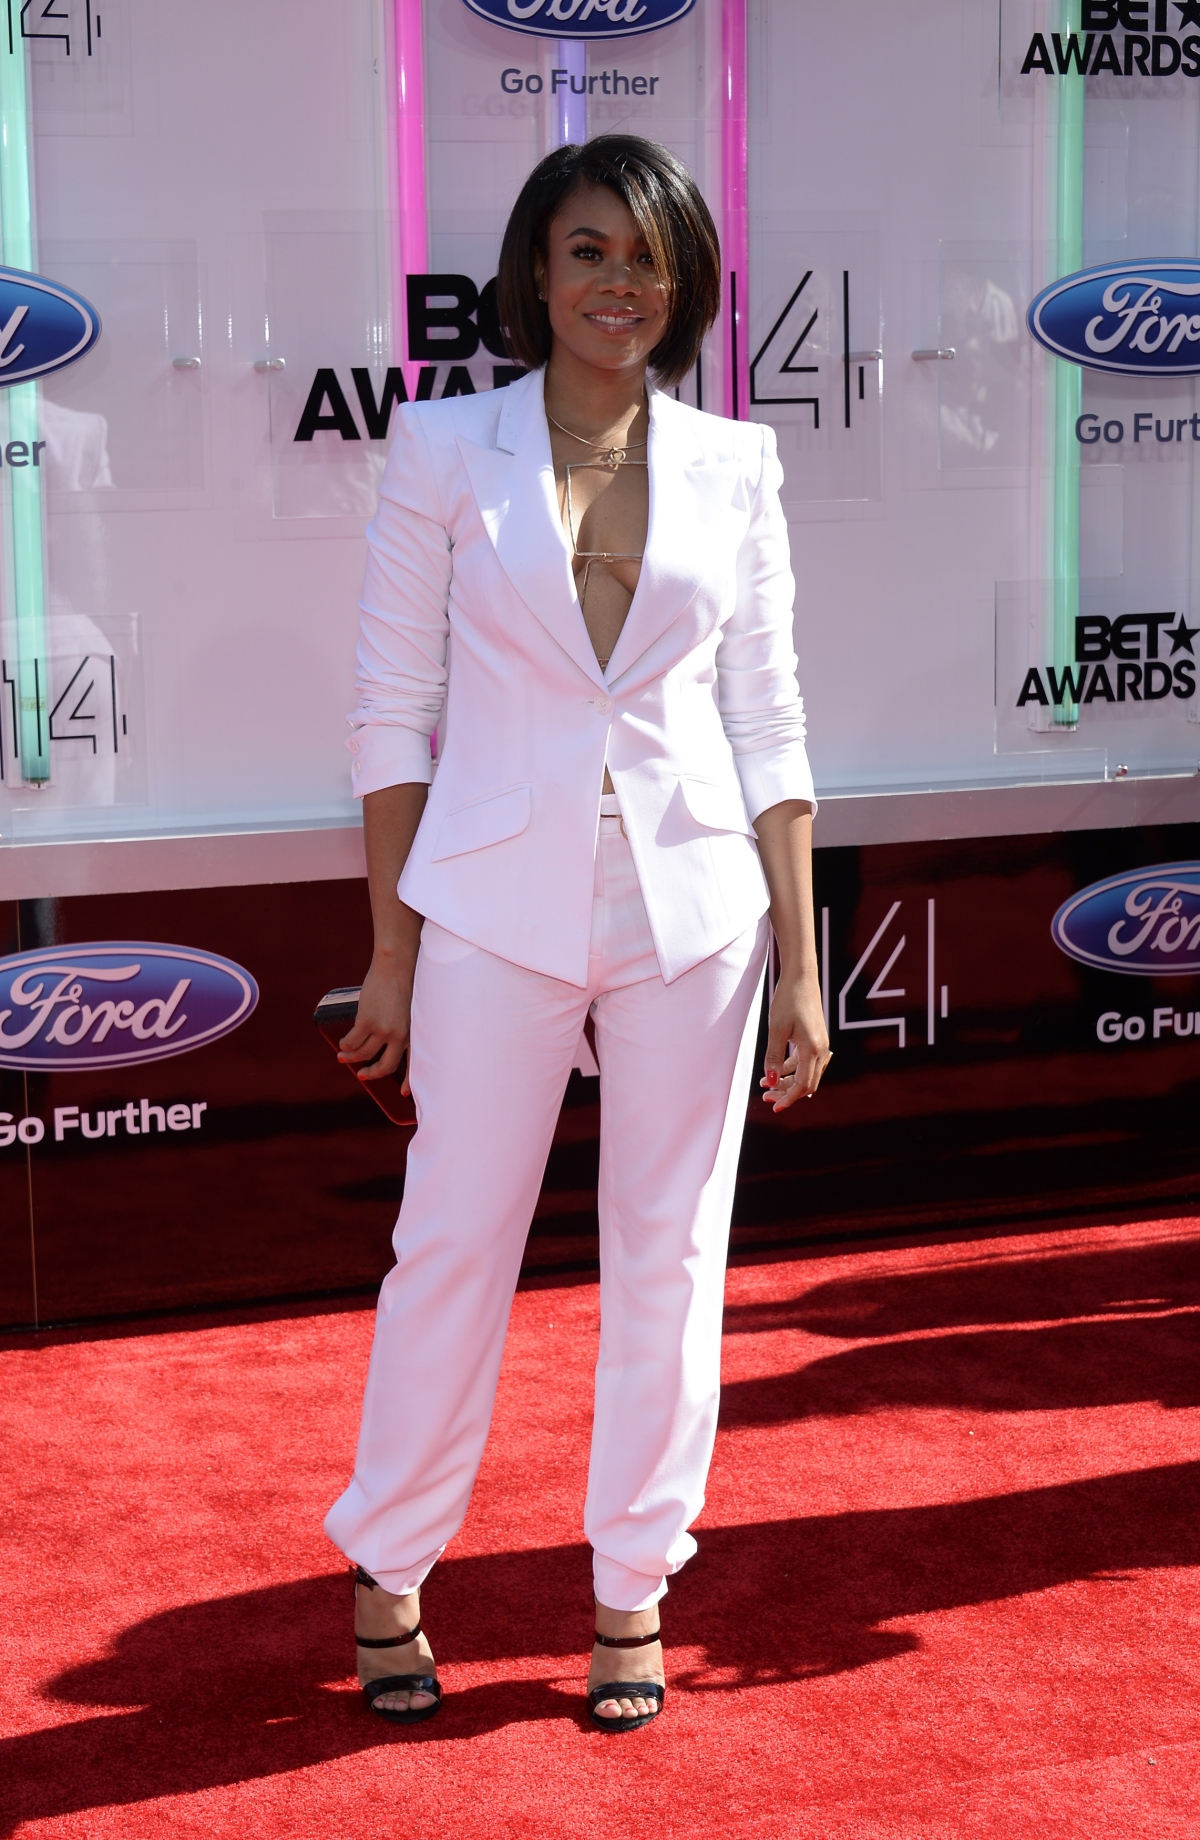 Regina Hall arrives at the 2014 BET Awards in Los Angeles, California.